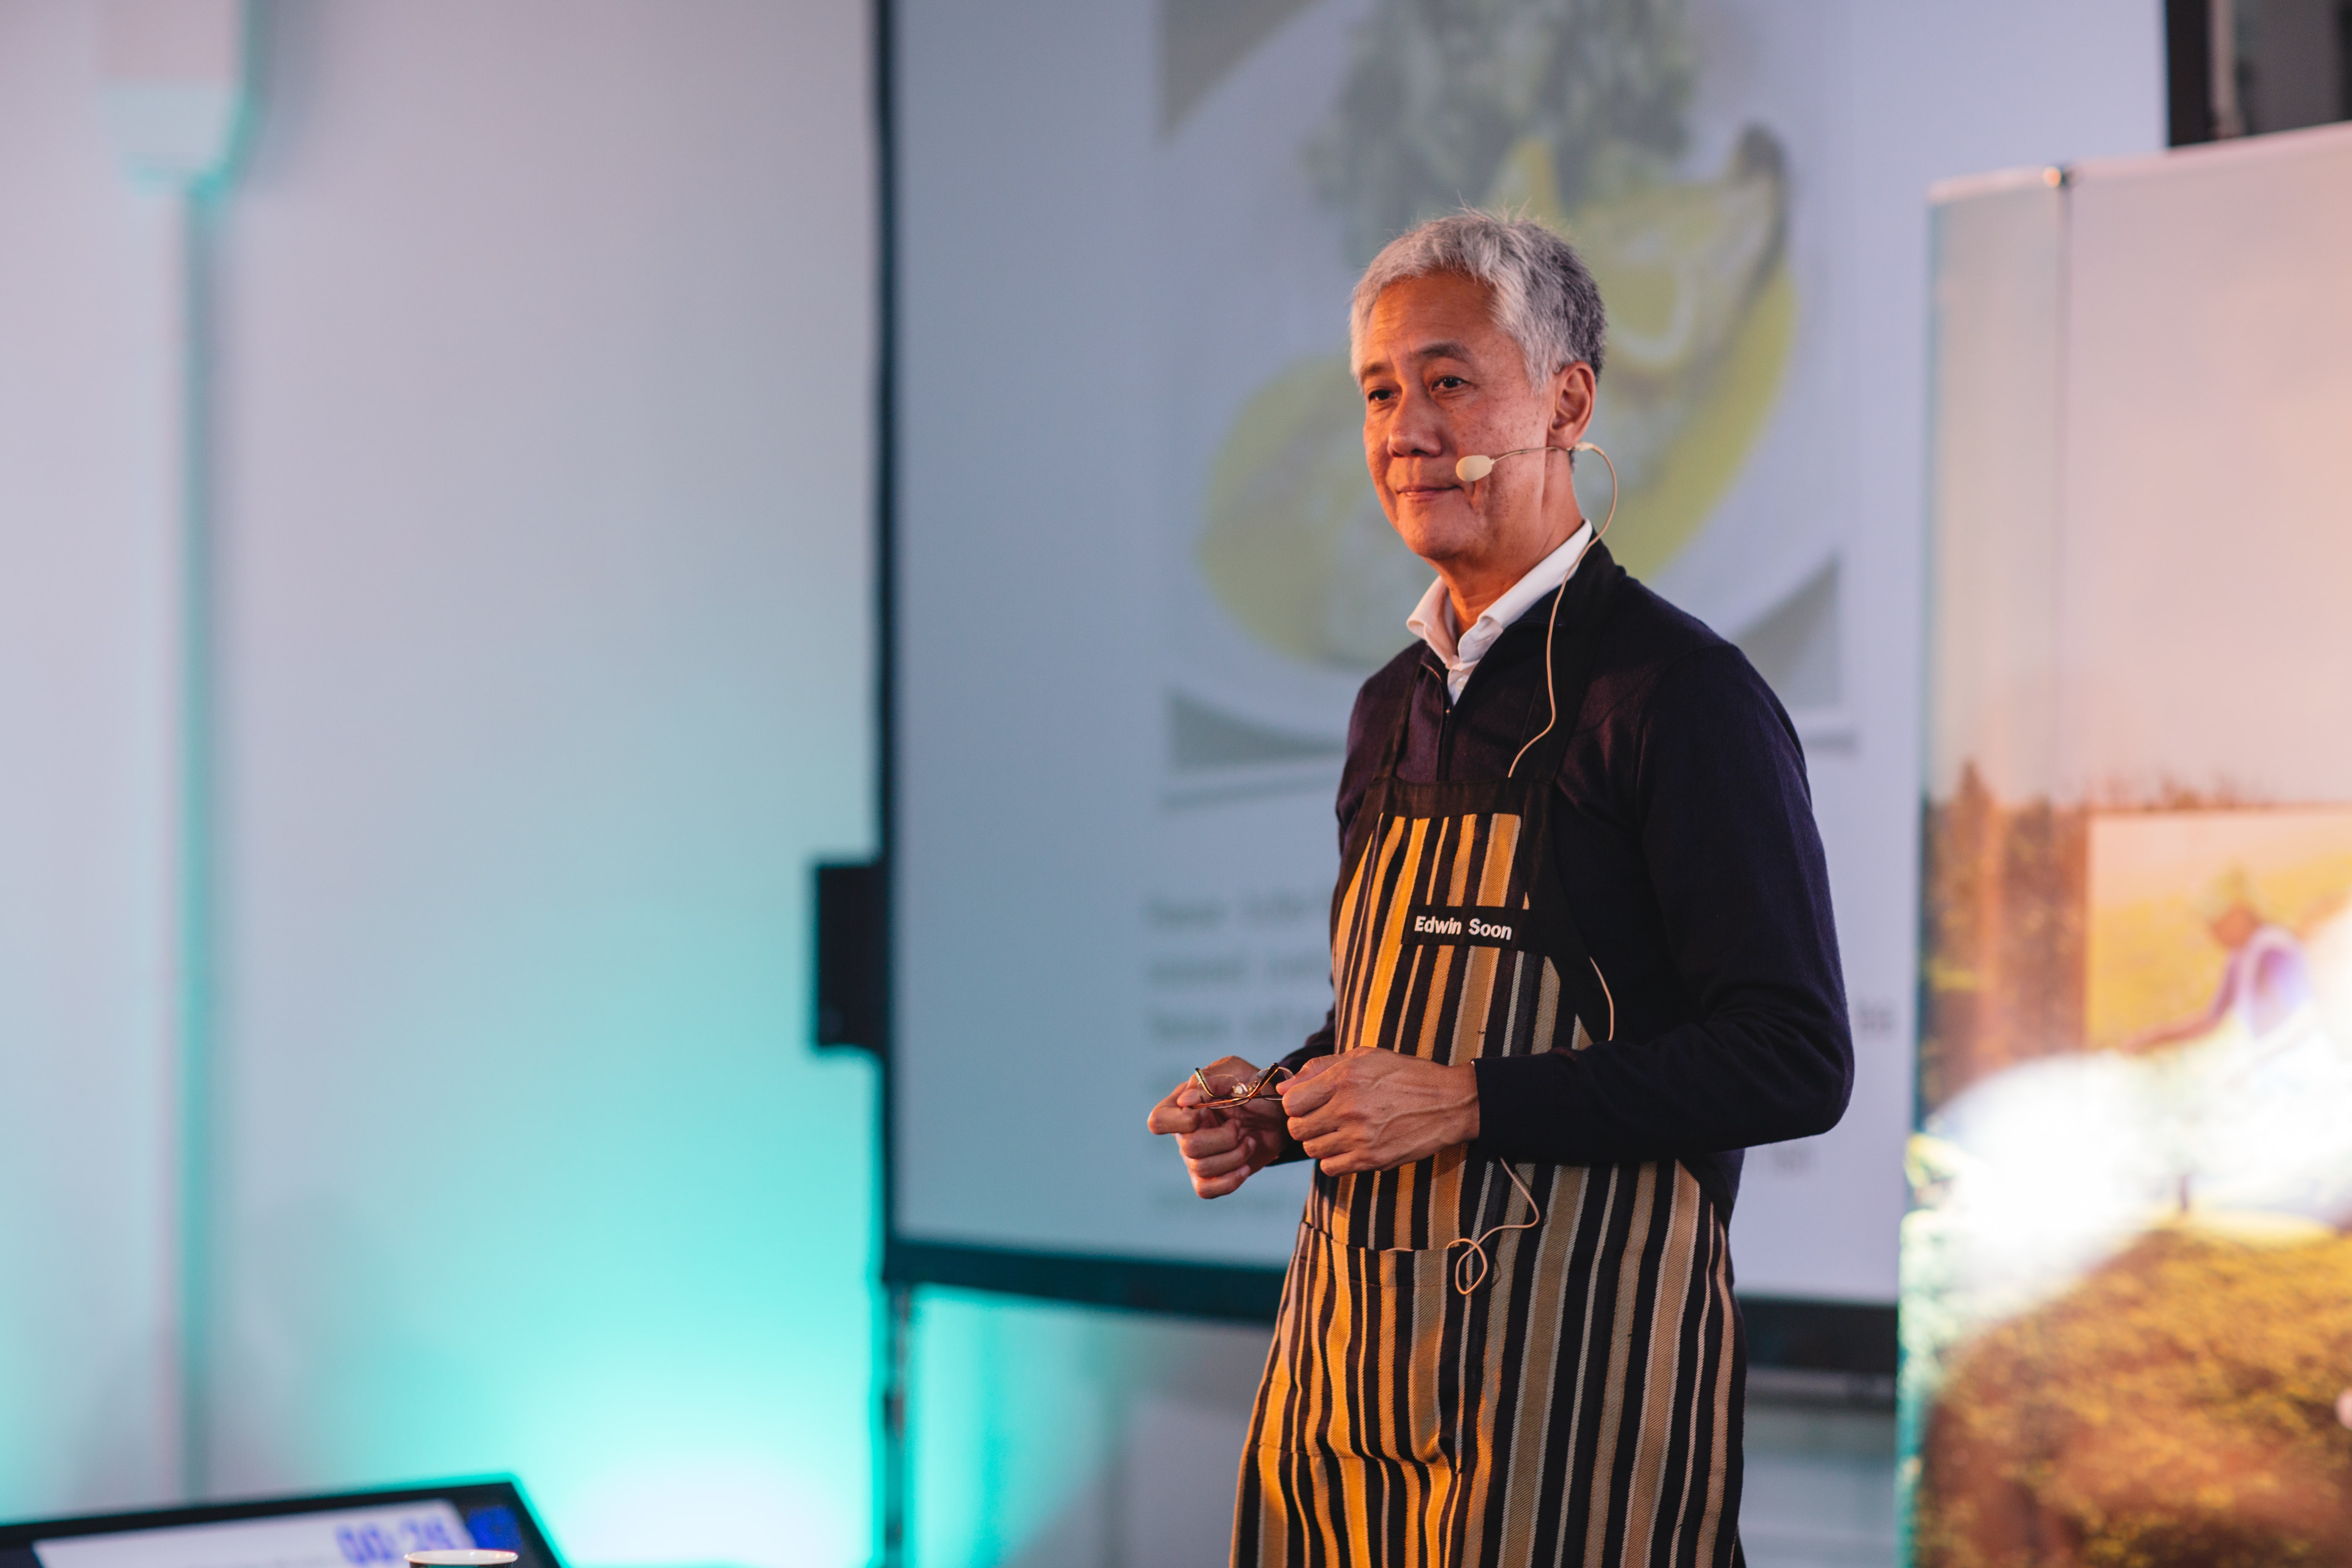 Edwin Soon speaking about tea and food poring.